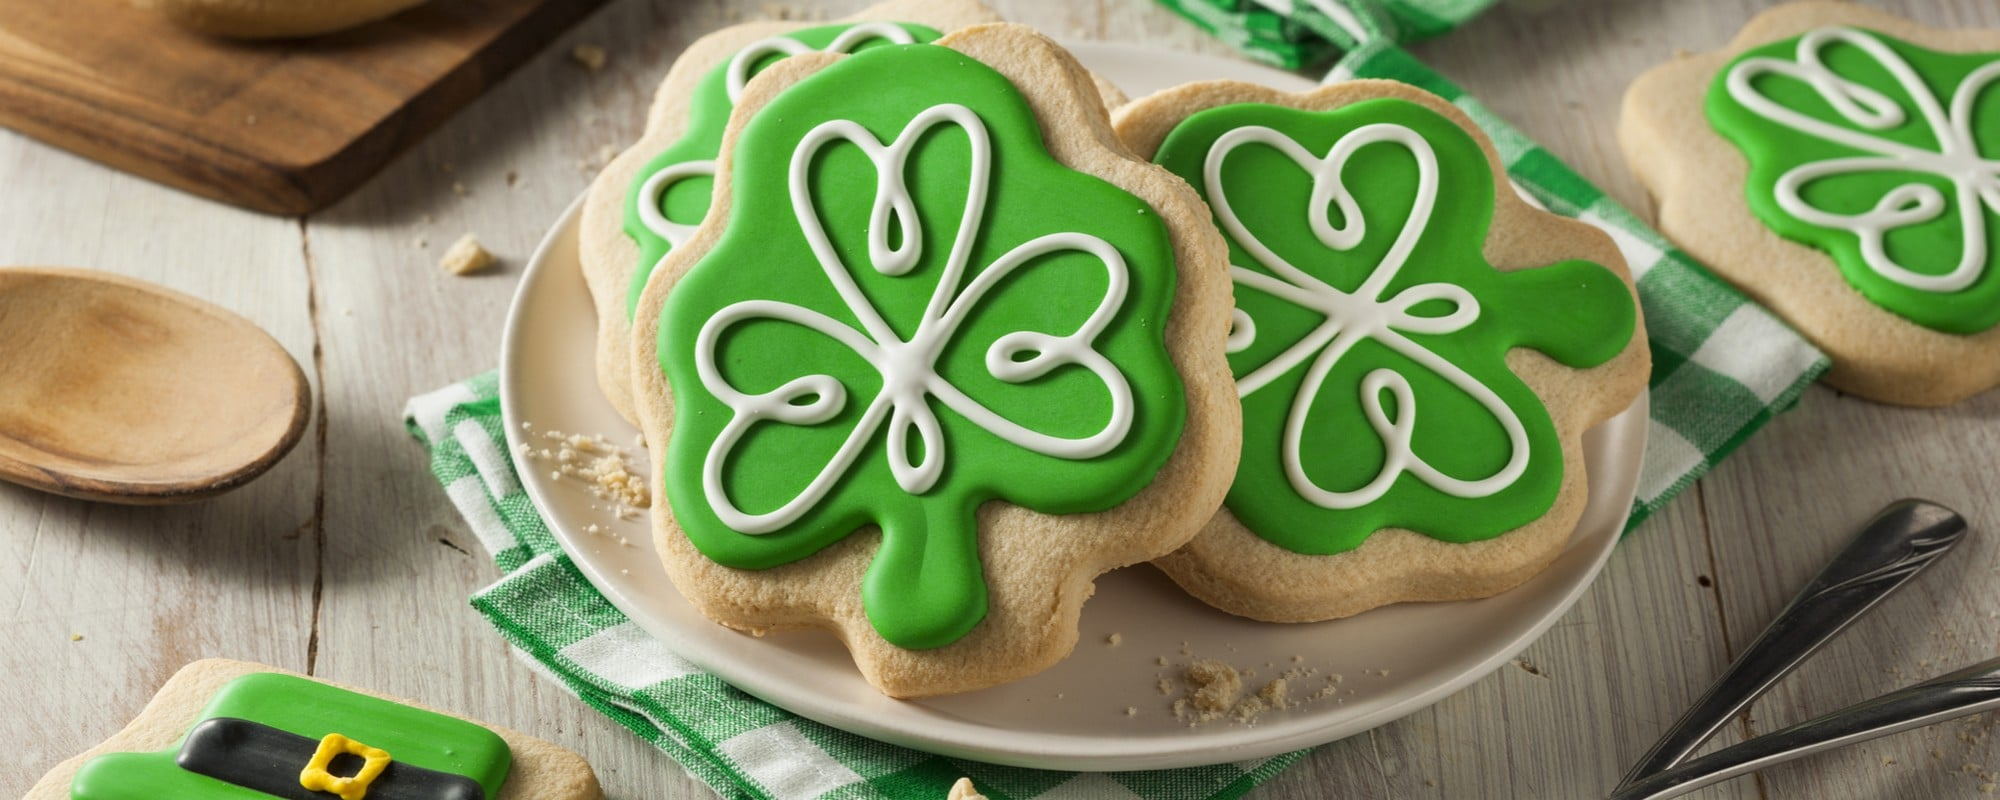 St. Patrick's Day: What do the Irish eat on March 17?